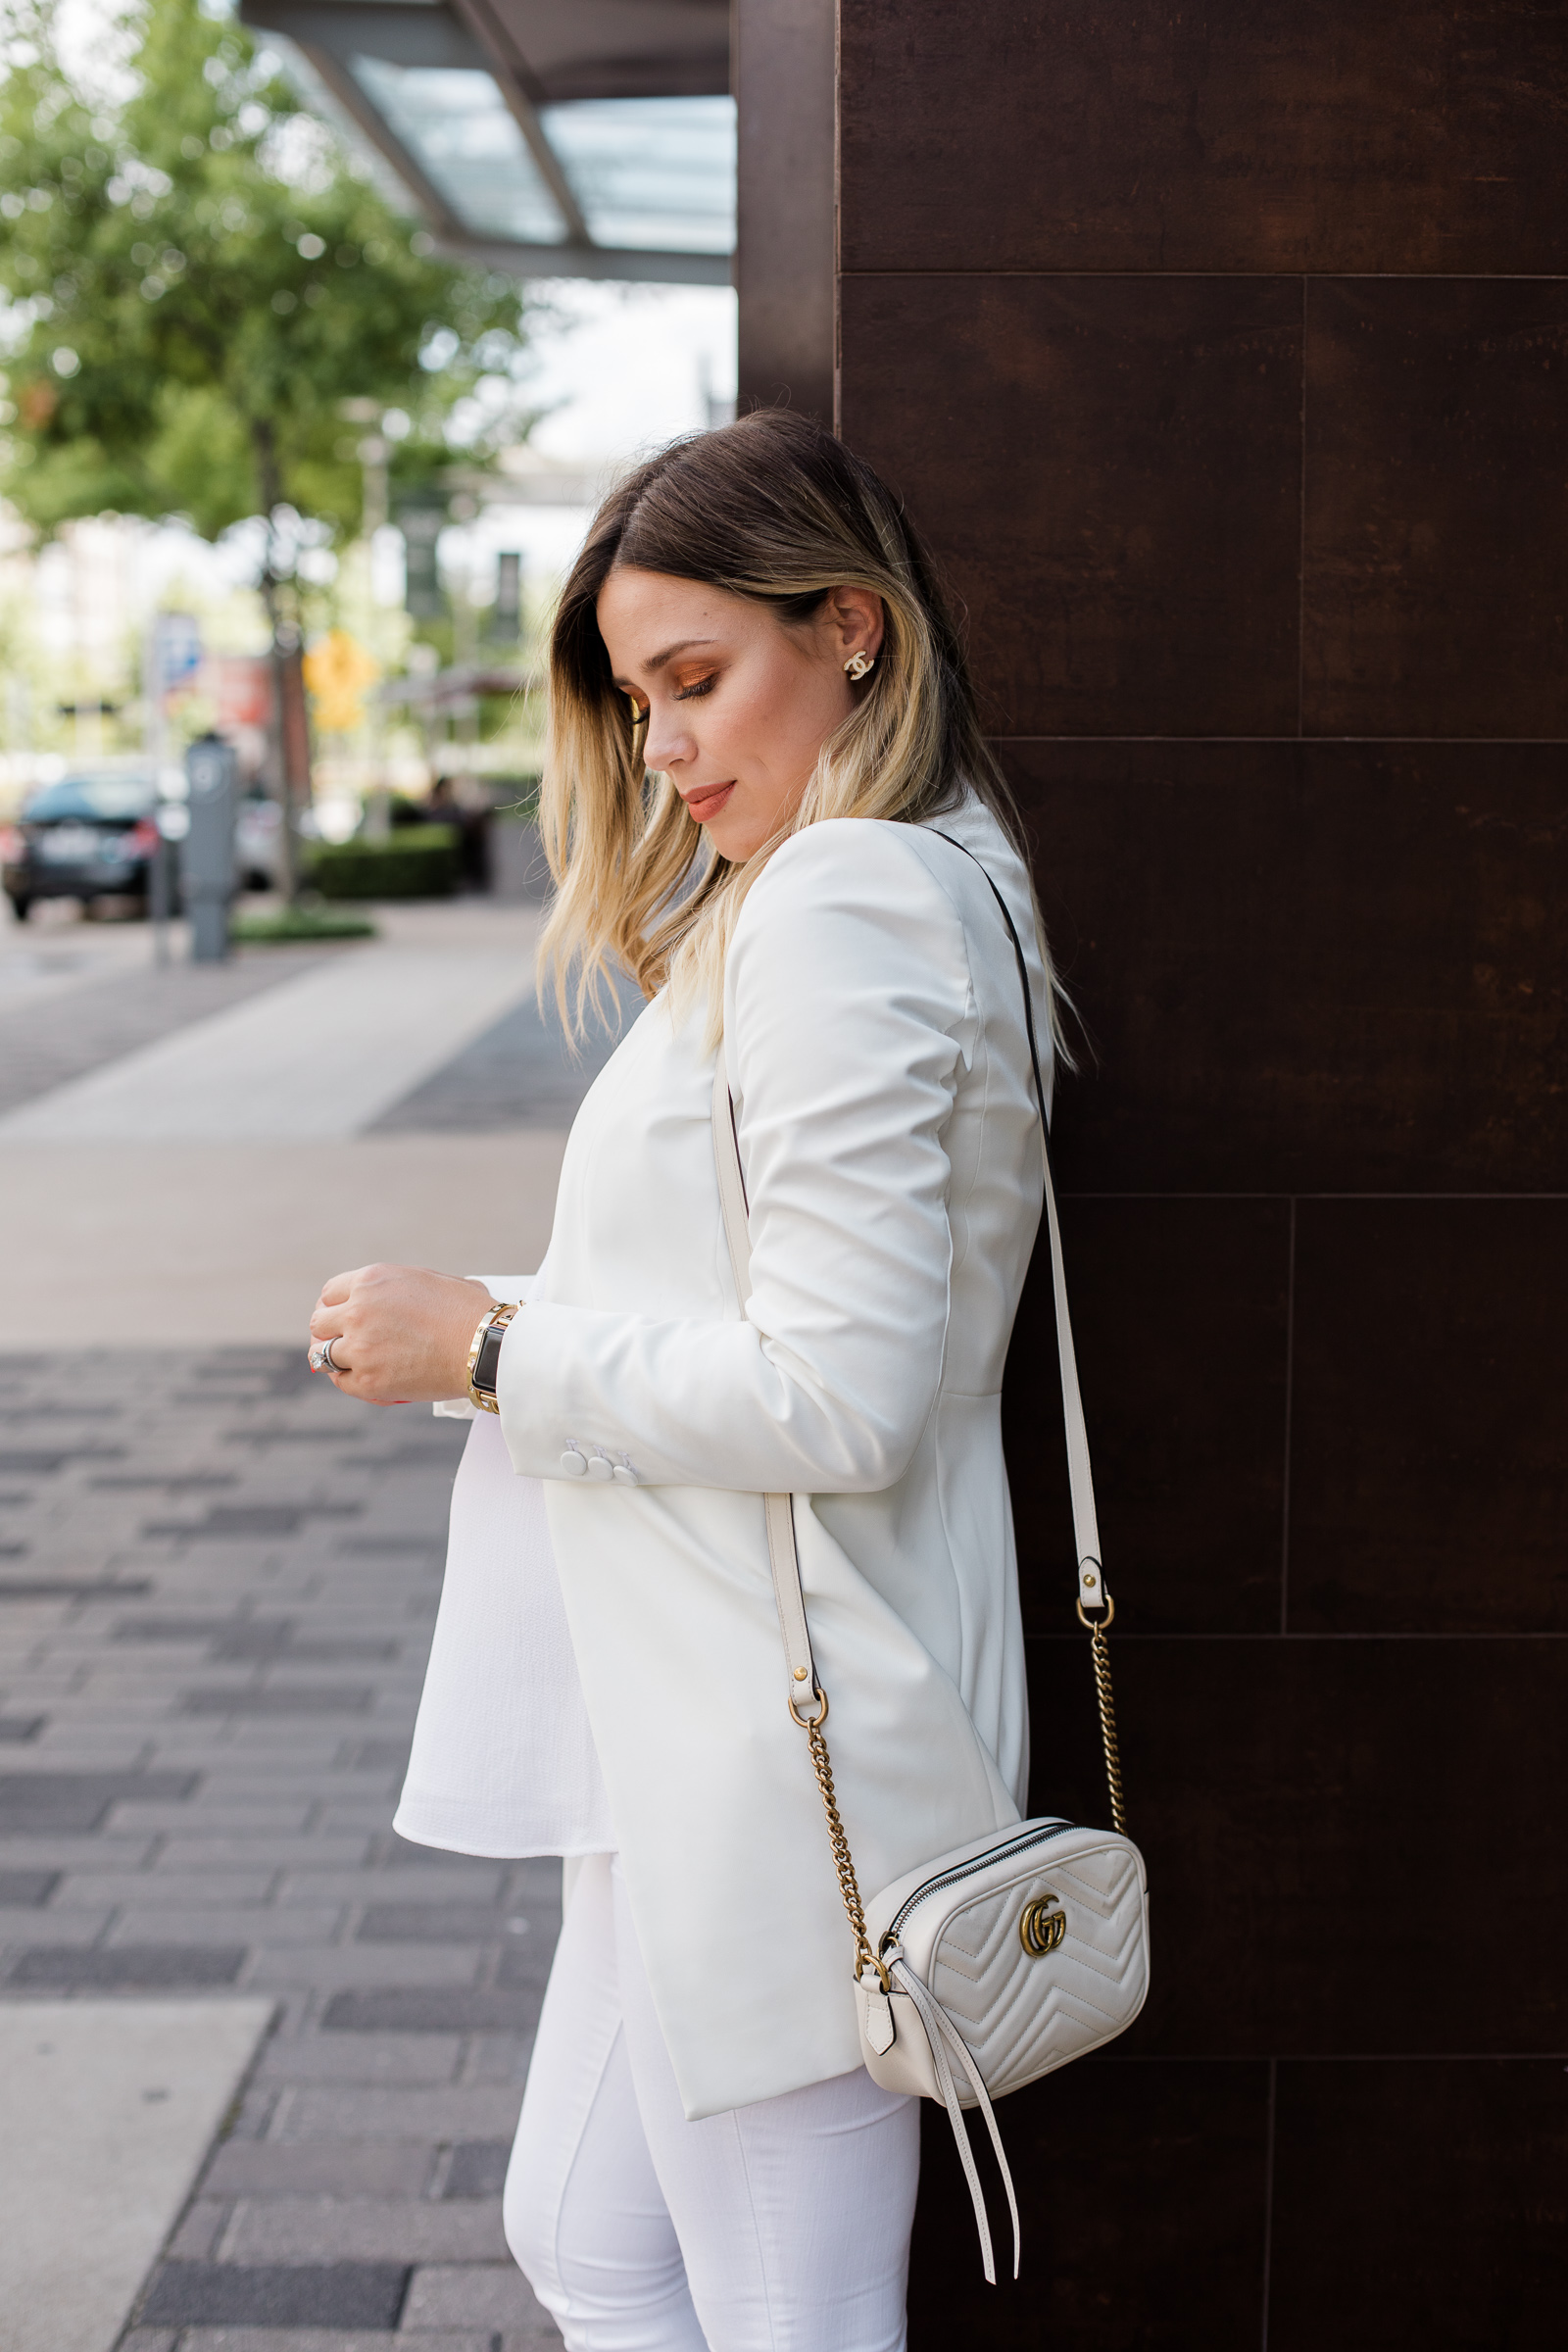 Houston fashion blogger Elly Brown wears a white blazer with a Gucci bag